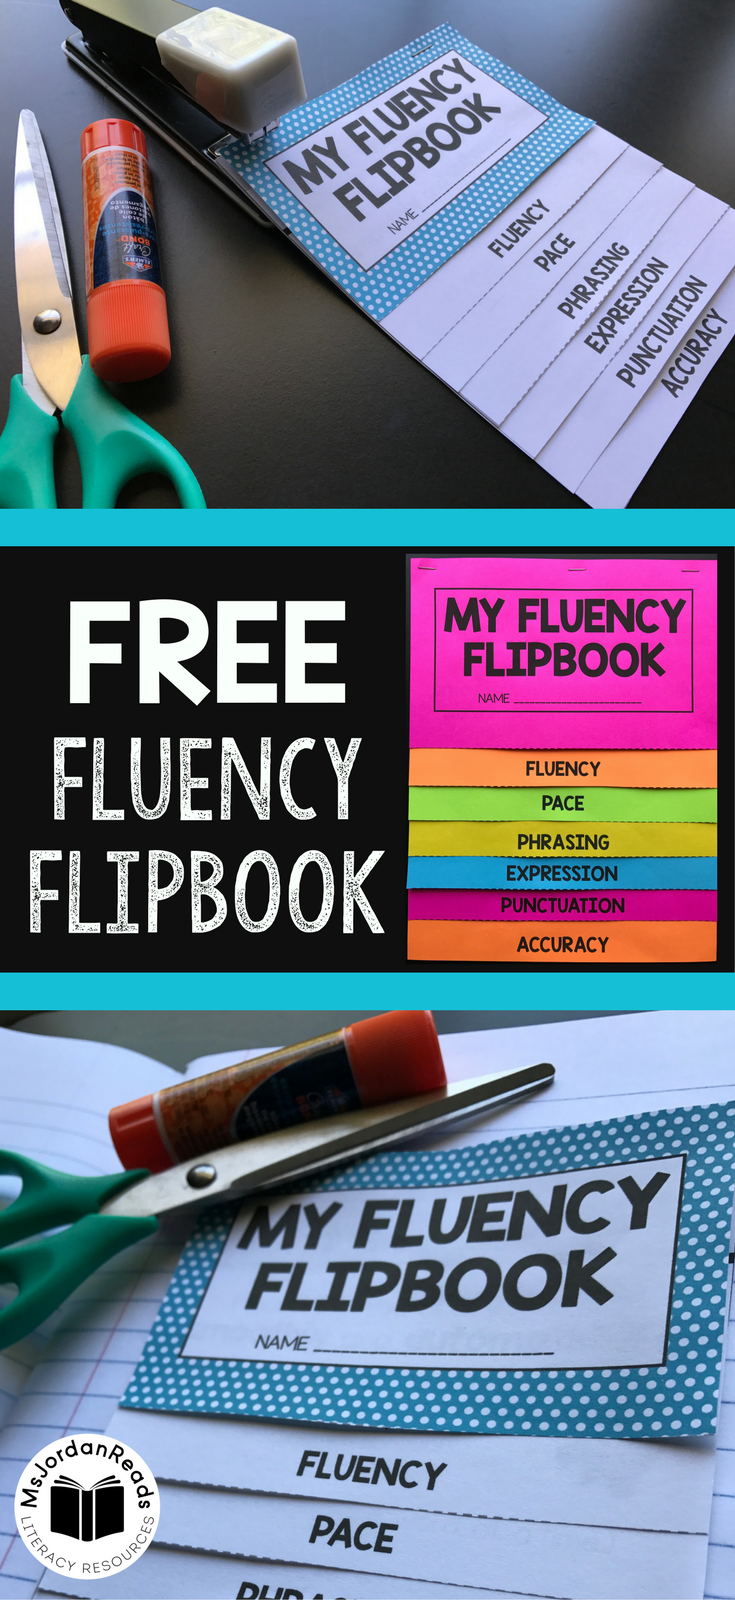 Fluency Flipbook for introducing and reviewing fluency in the classroom. Use it for small group instruction, fluency stations, literacy centers, interactive notebooks, reading notebooks, or to send home with students! | Sign Up for MsJordanReads Newsletter for your FREE Fluency Flipbook!